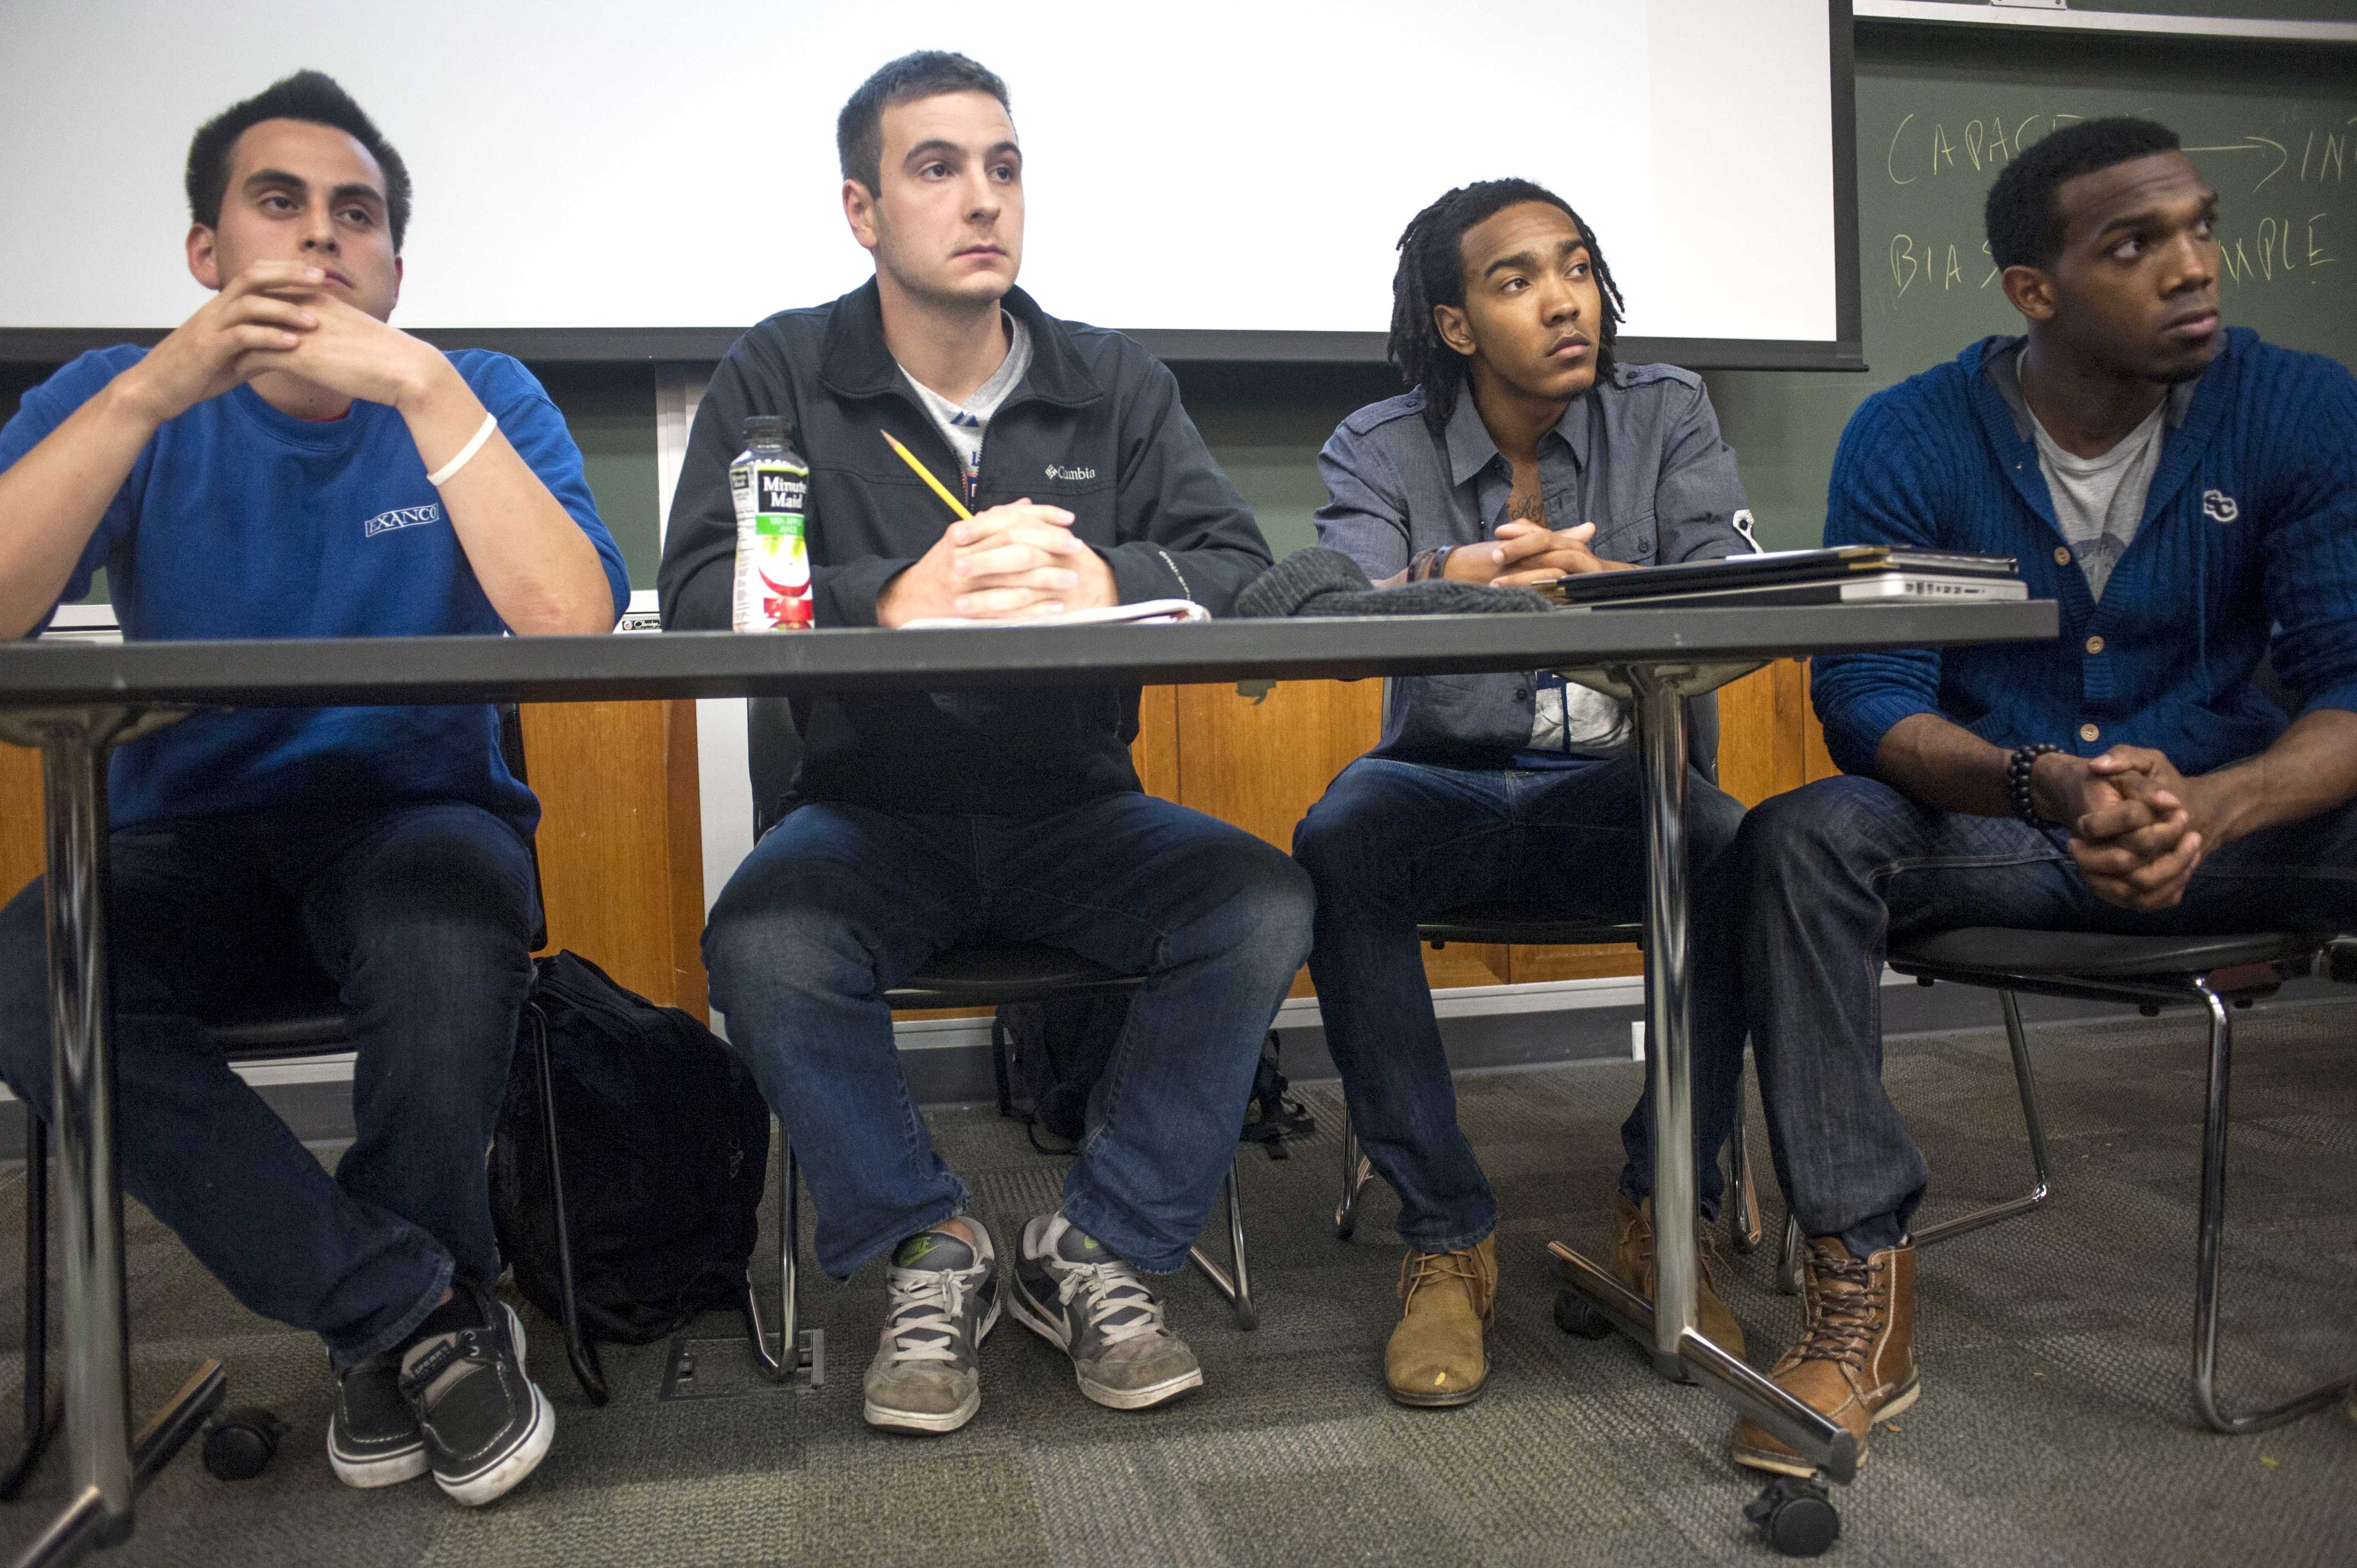 Northwestern students Daniel Flores, Andrew Jarrell, Justin Clarke and Tarik Patterson (left to right) debate race-based affirmative action policies in higher education. About 60 students participated in the Northwestern Political Union event Monday.